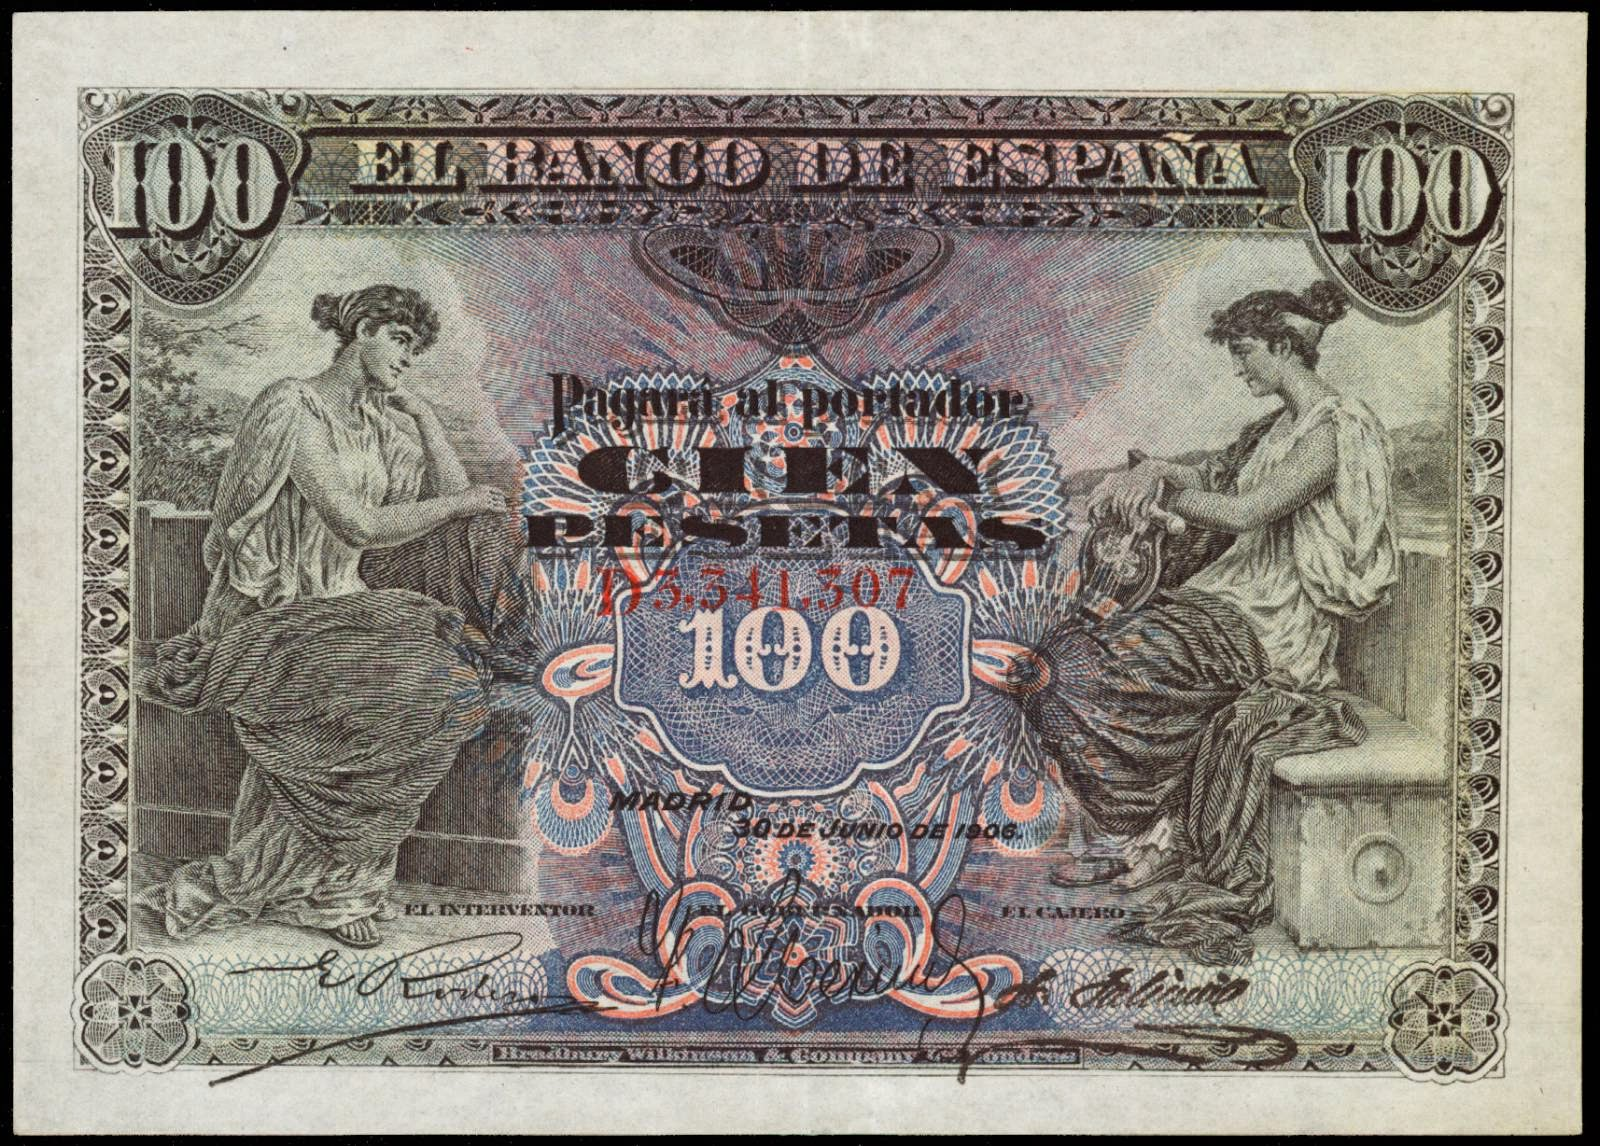 Spain banknotes 100 Pesetas note 1908